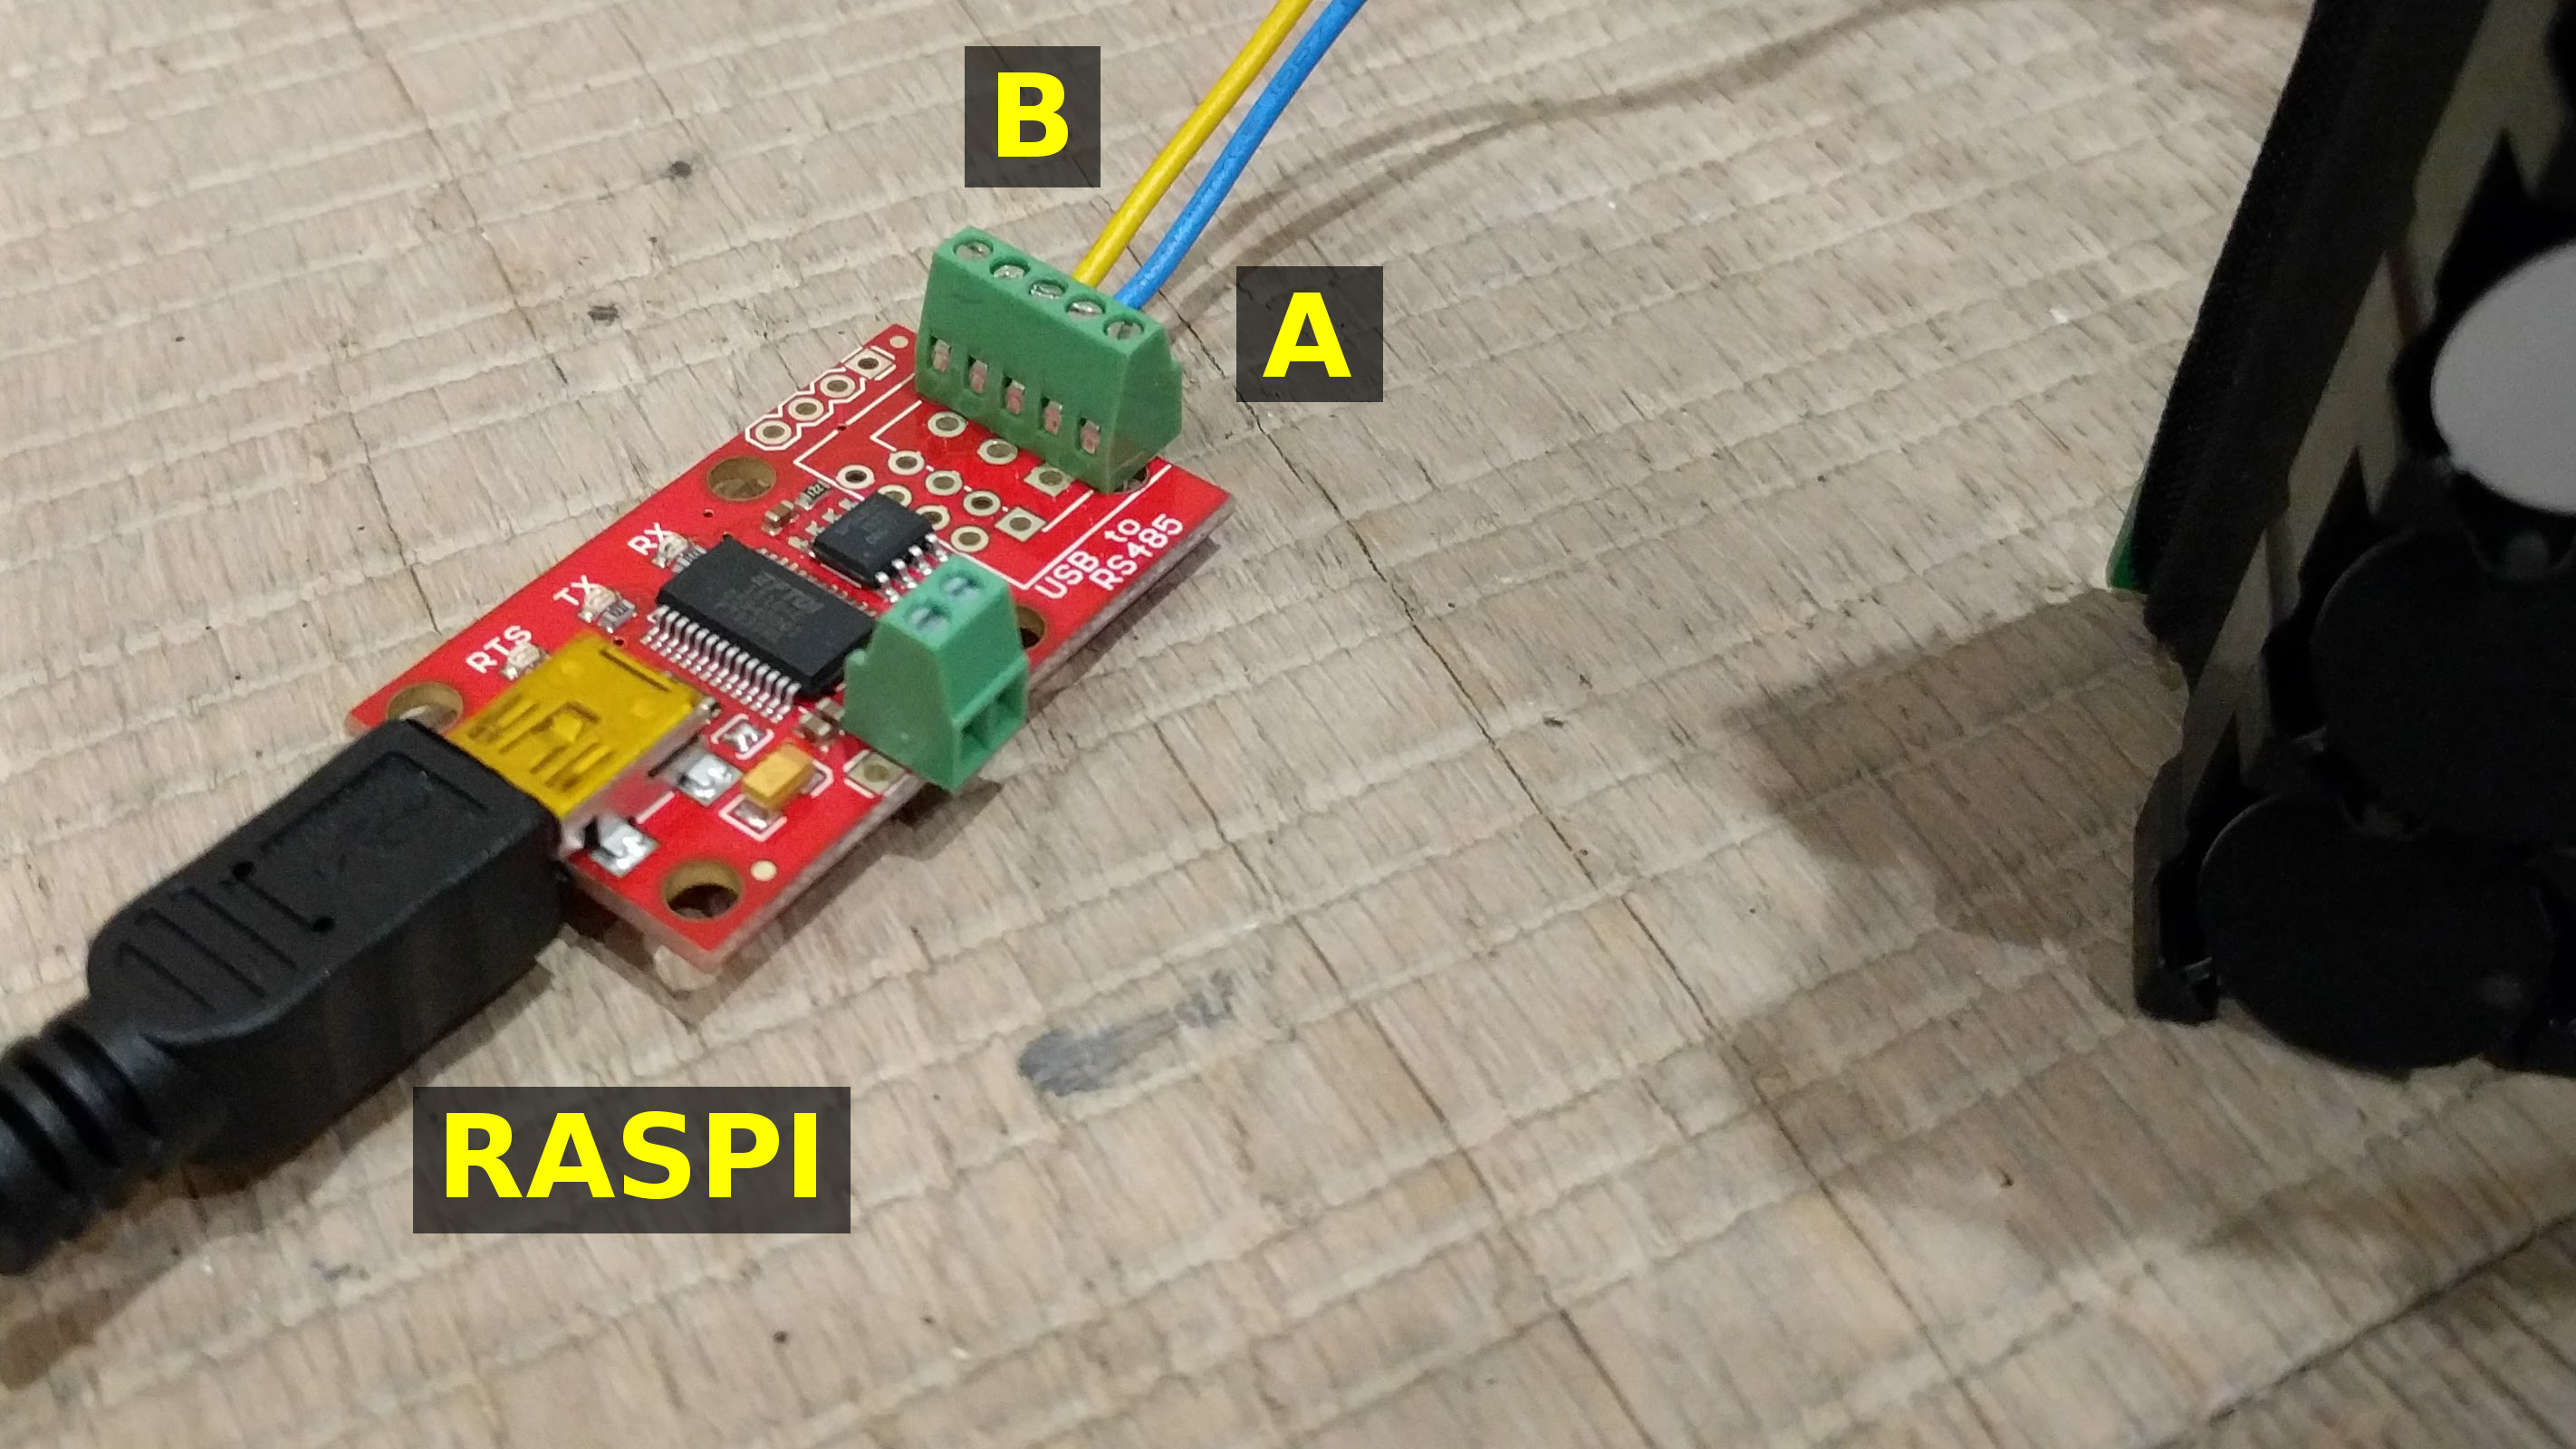 Picture of Connect Usb to Rs485 Board to Raspberry Pi